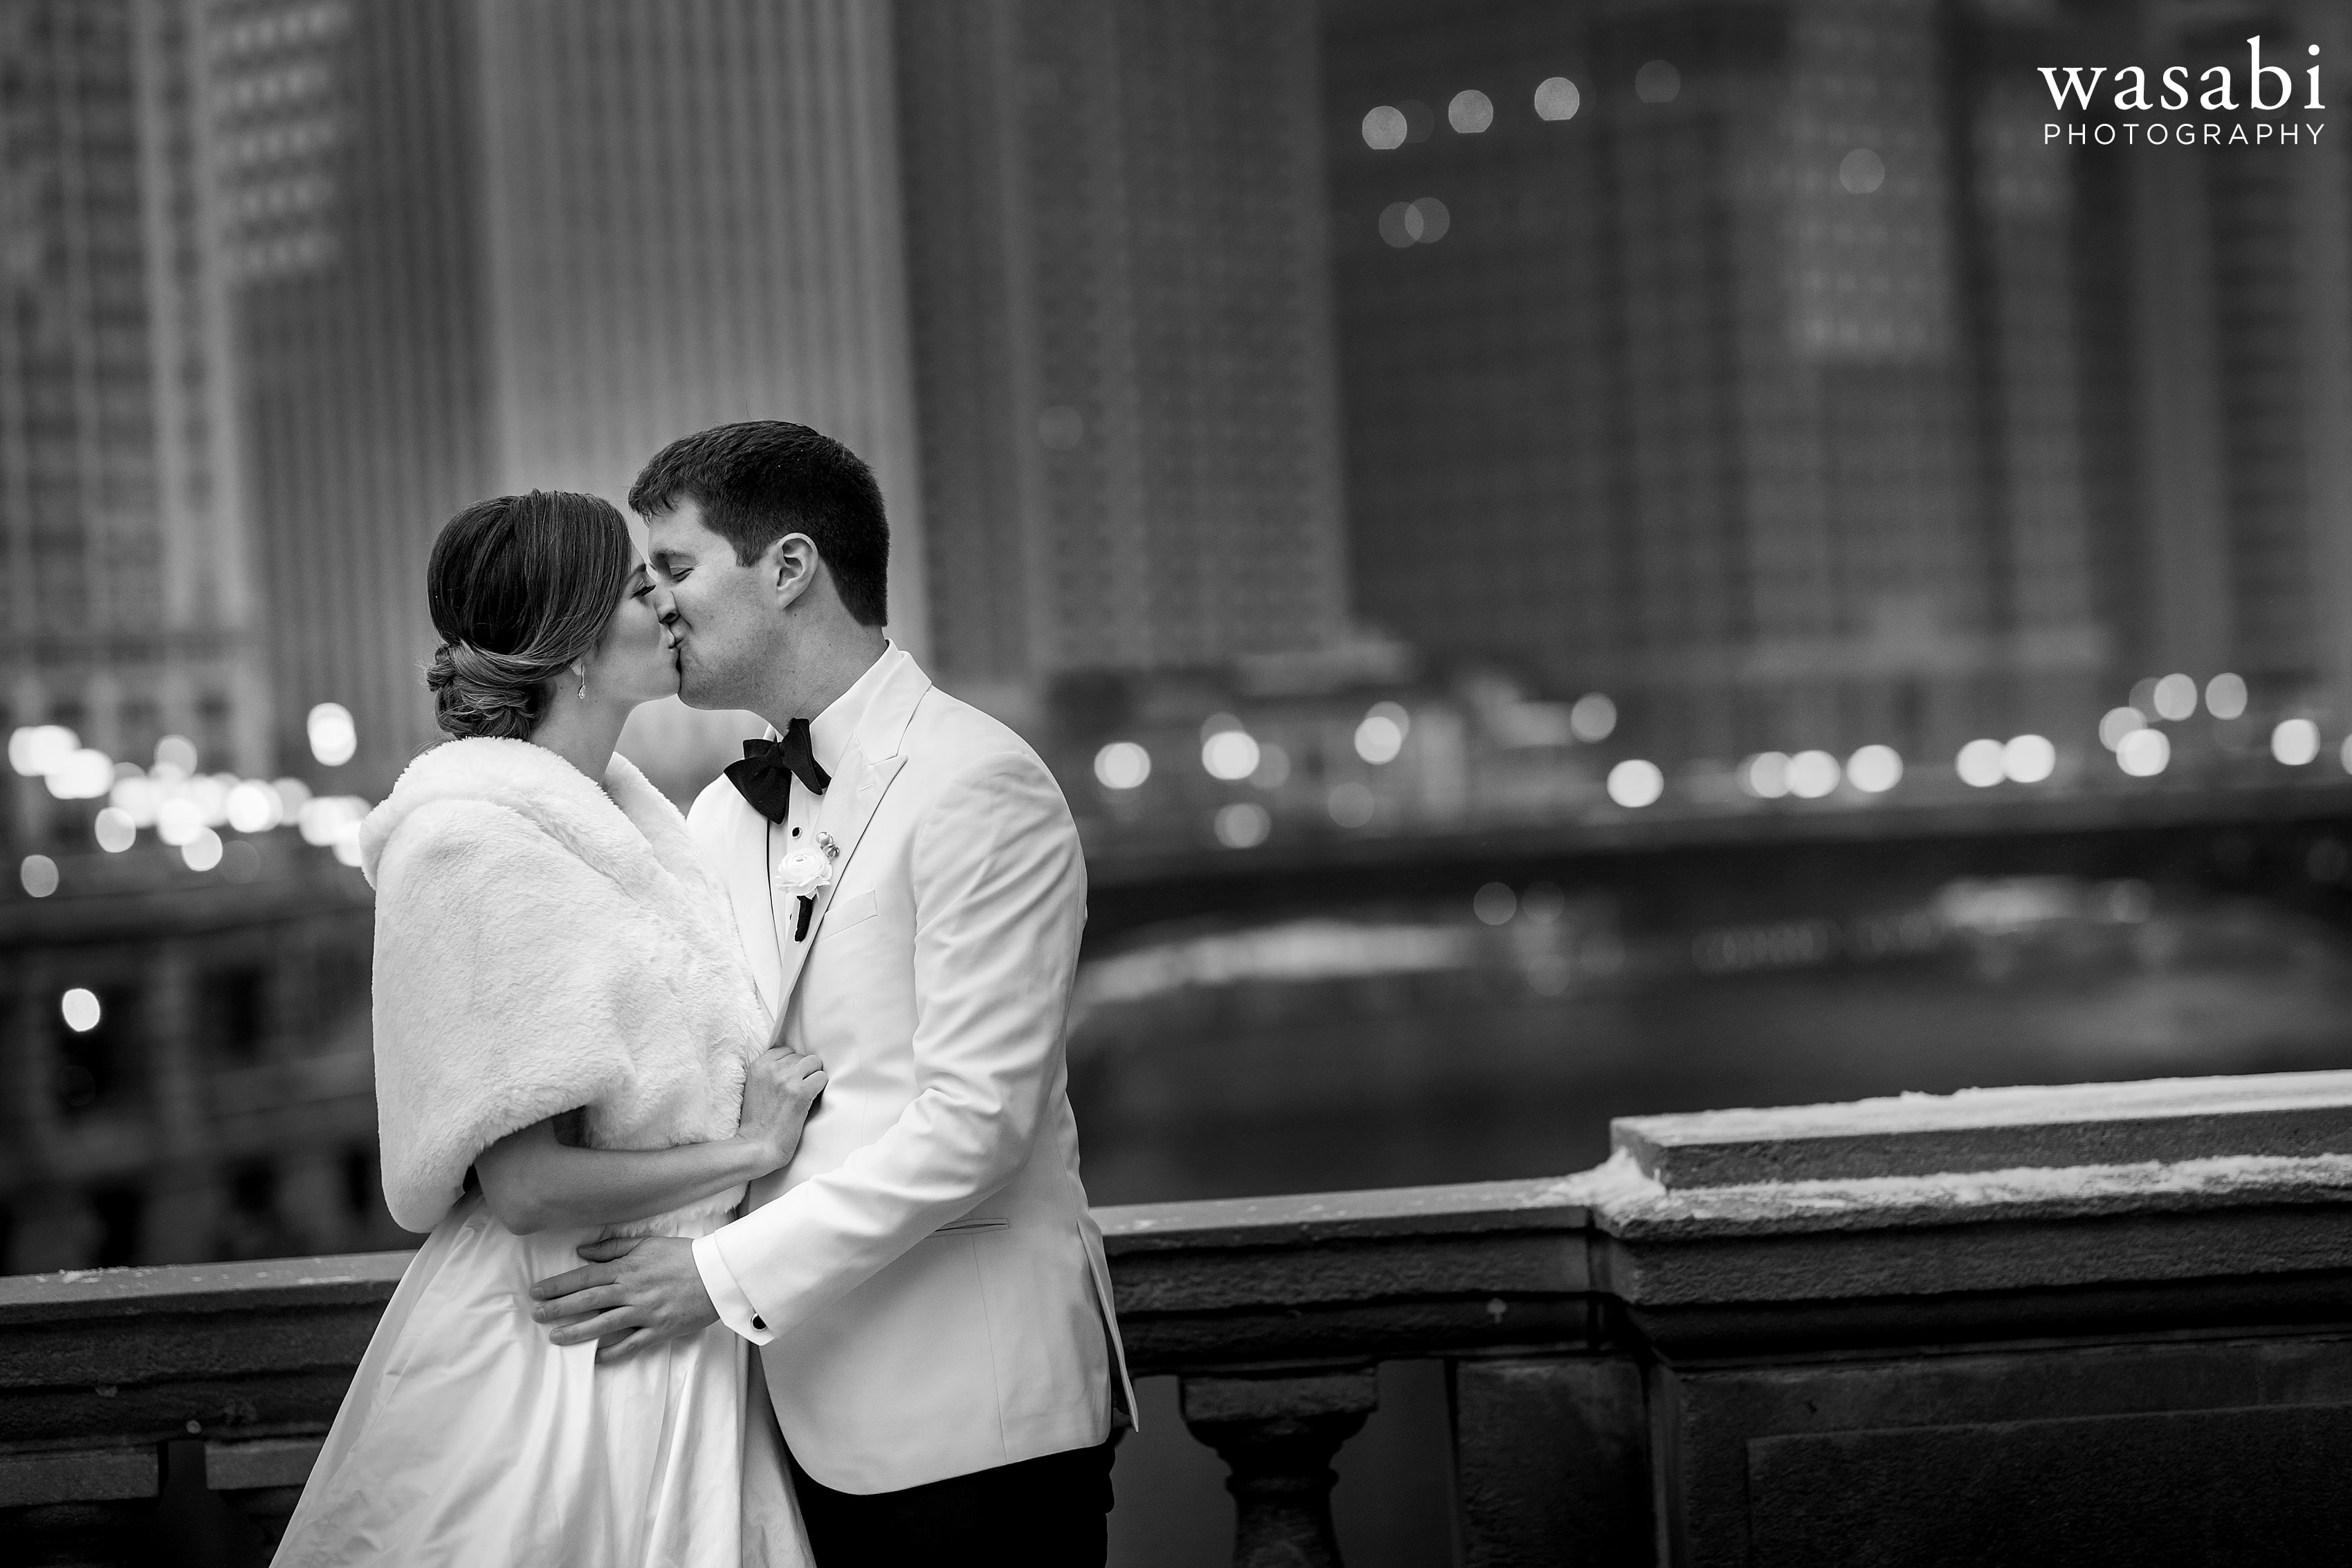 Bride and groom kiss on Michigan Ave. Bridge with Chicago River and skyline in background